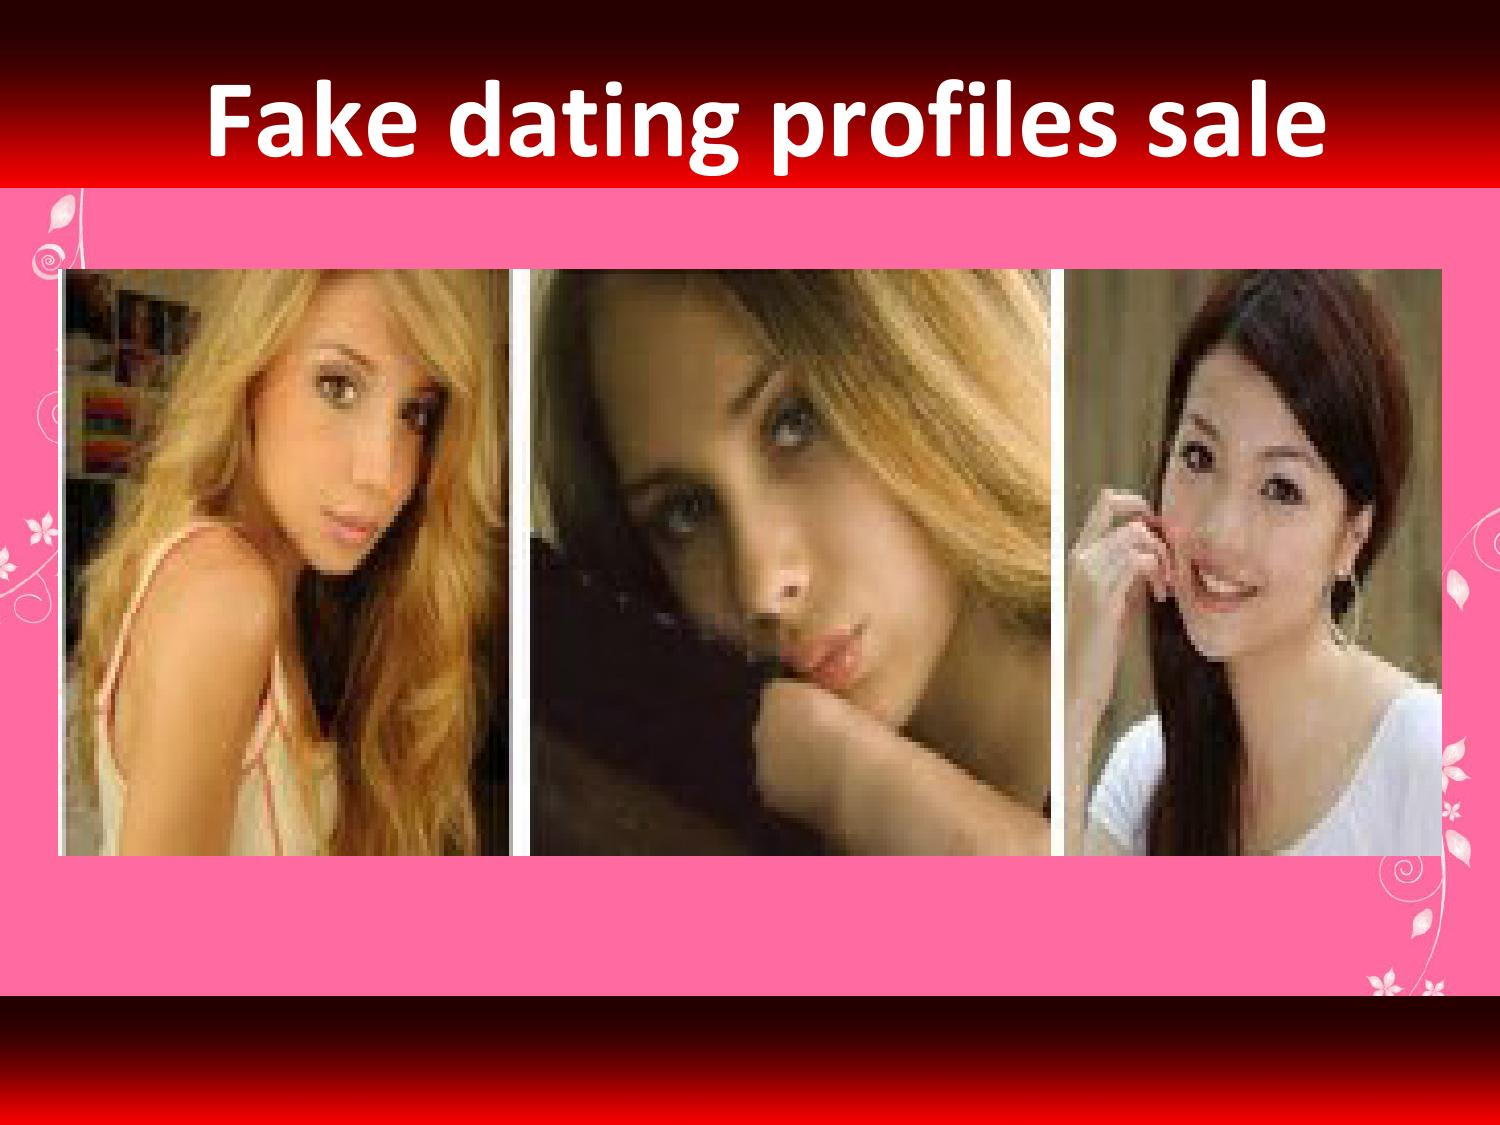 Fake pictures for dating profiles